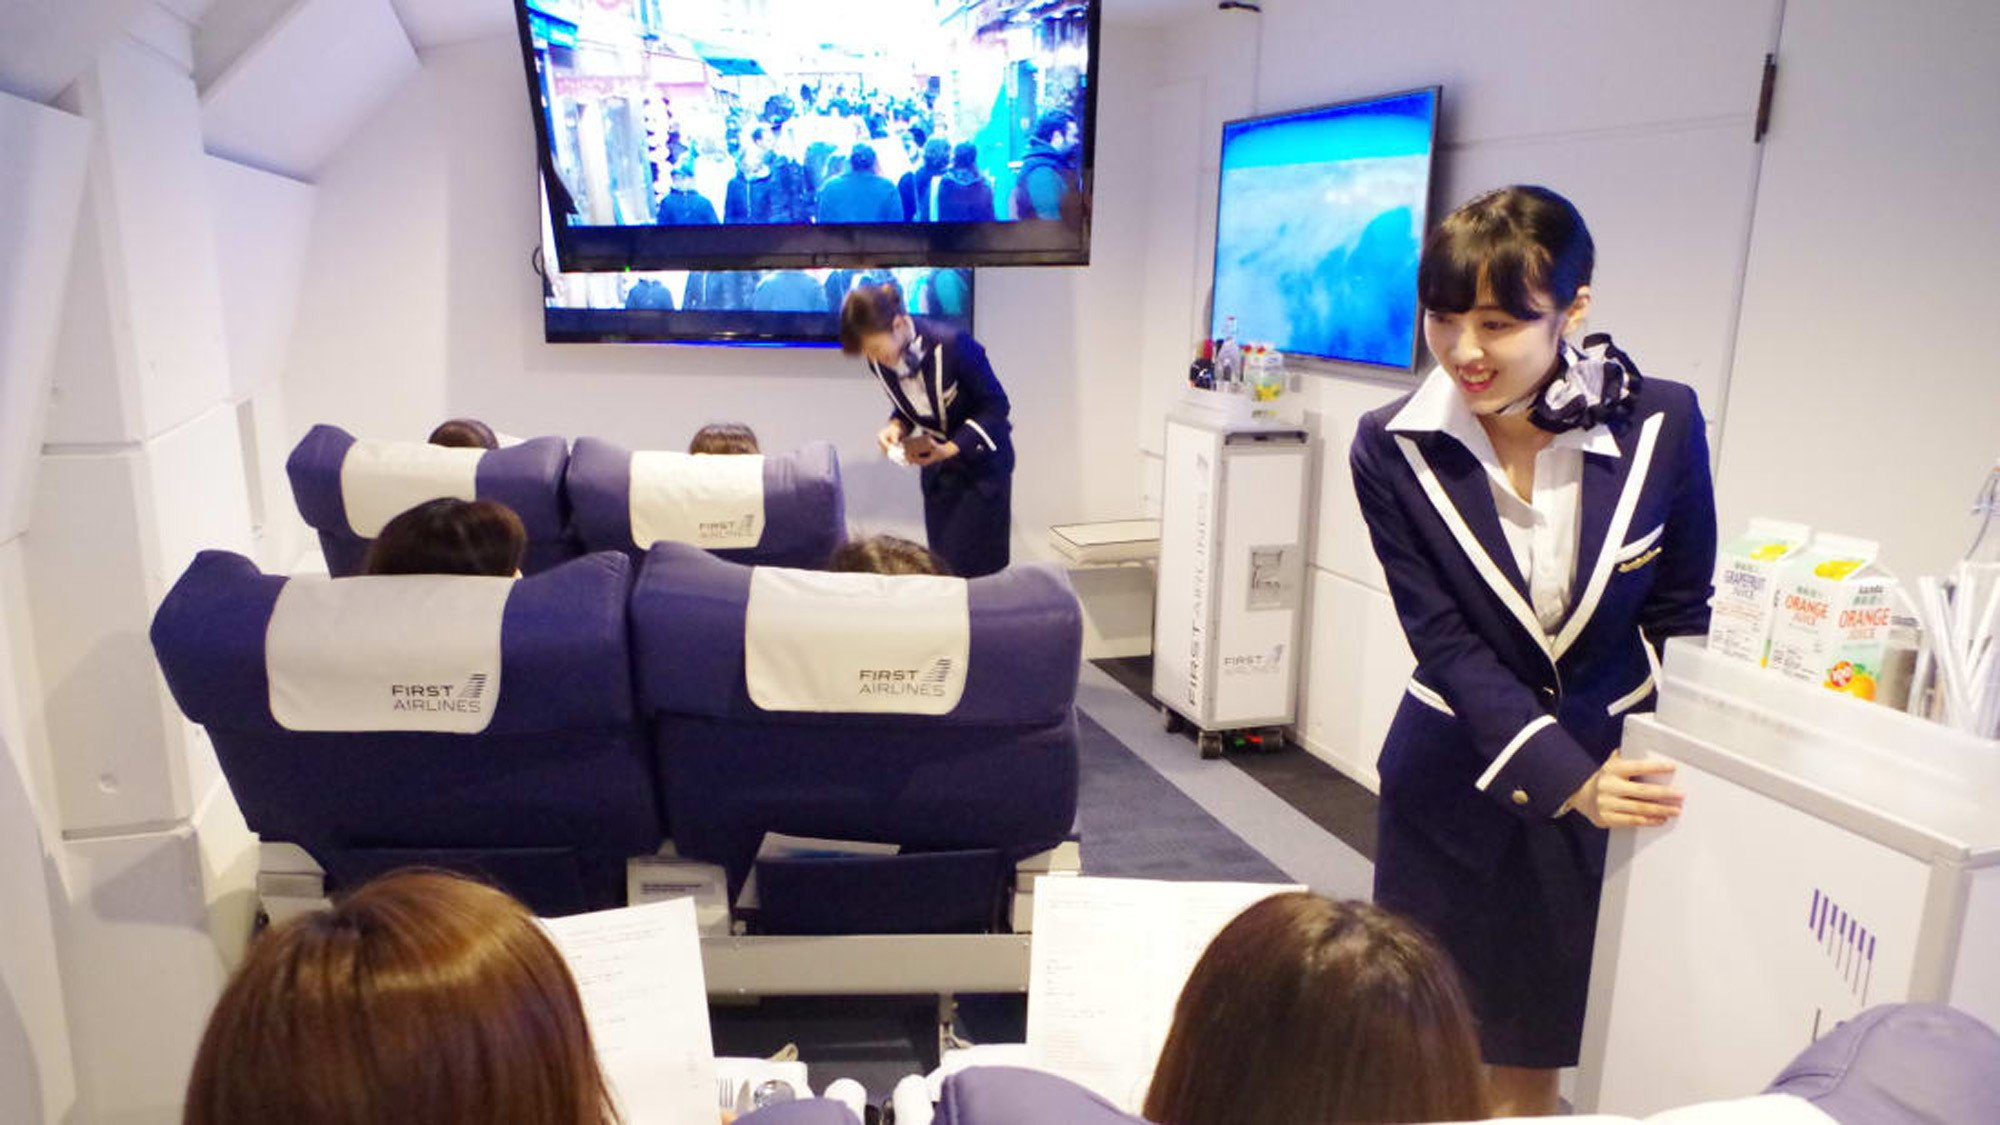 """Airline' offers full flying experience without ever taking off"